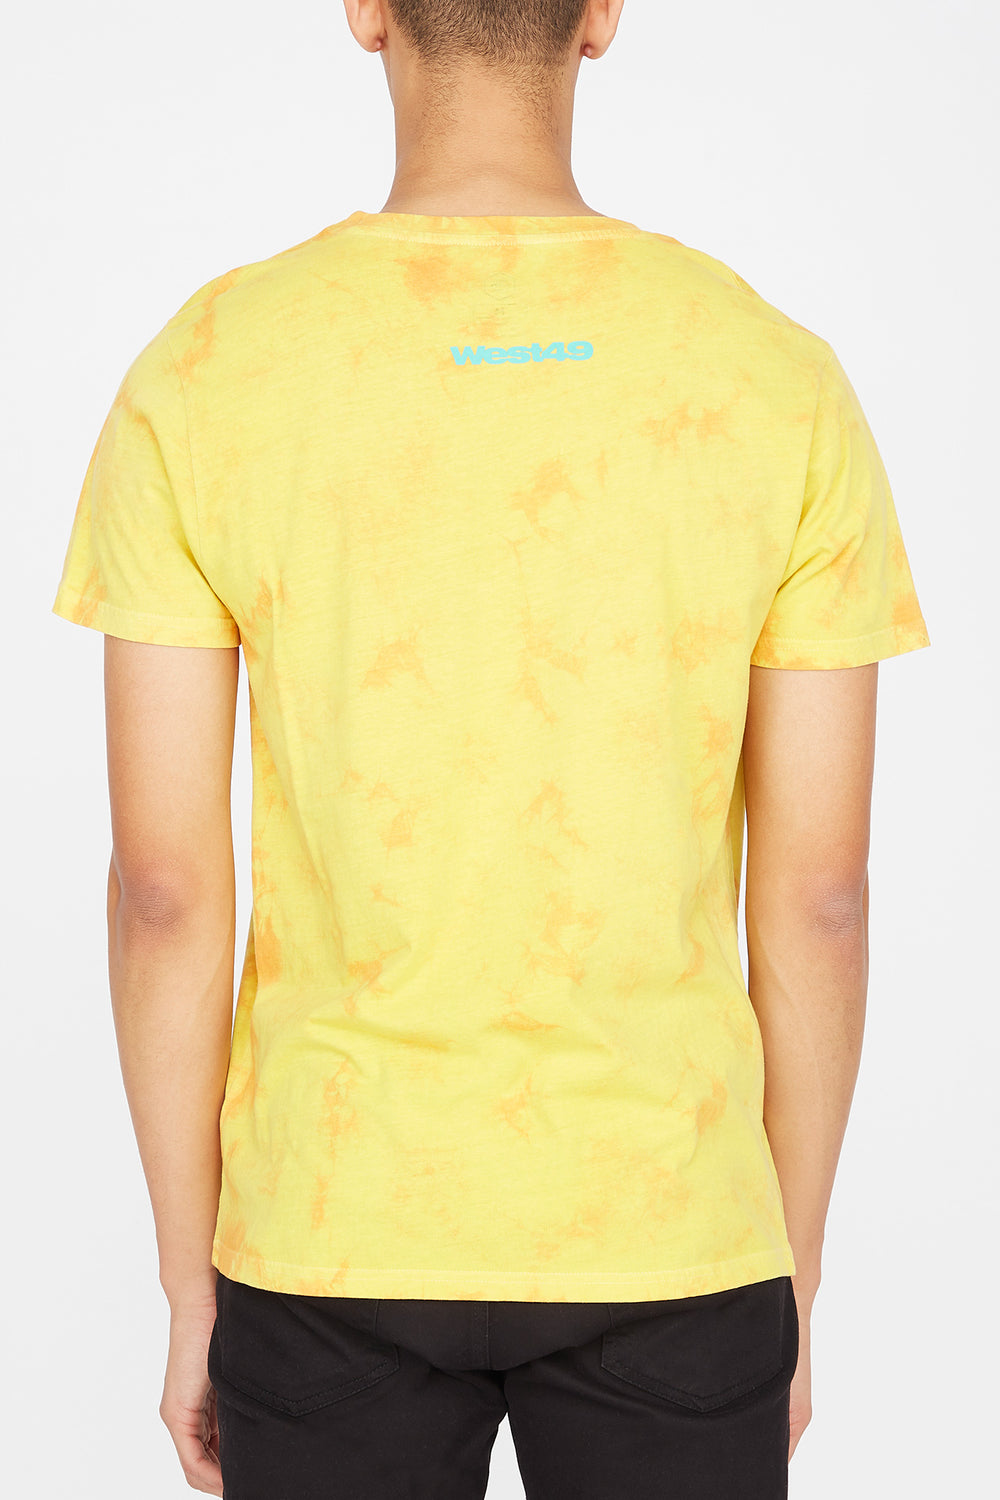 T-Shirt Tie-Dye Have a Nice Day Homme Jaune